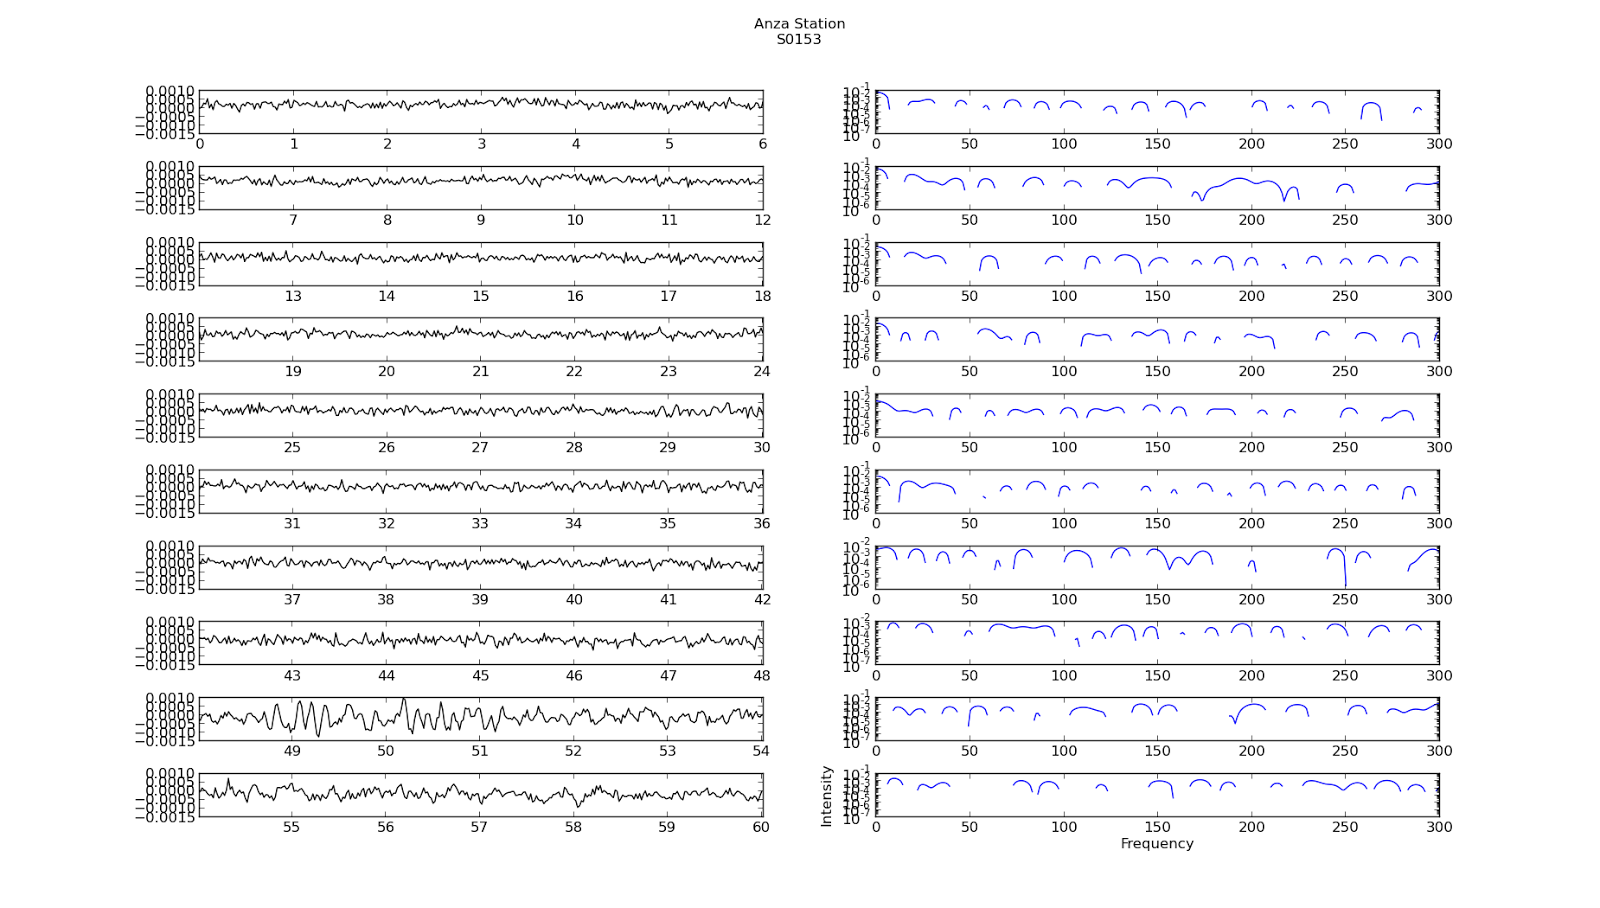 Applying Machine Learning to identify Earthquake Patterns: June 2013